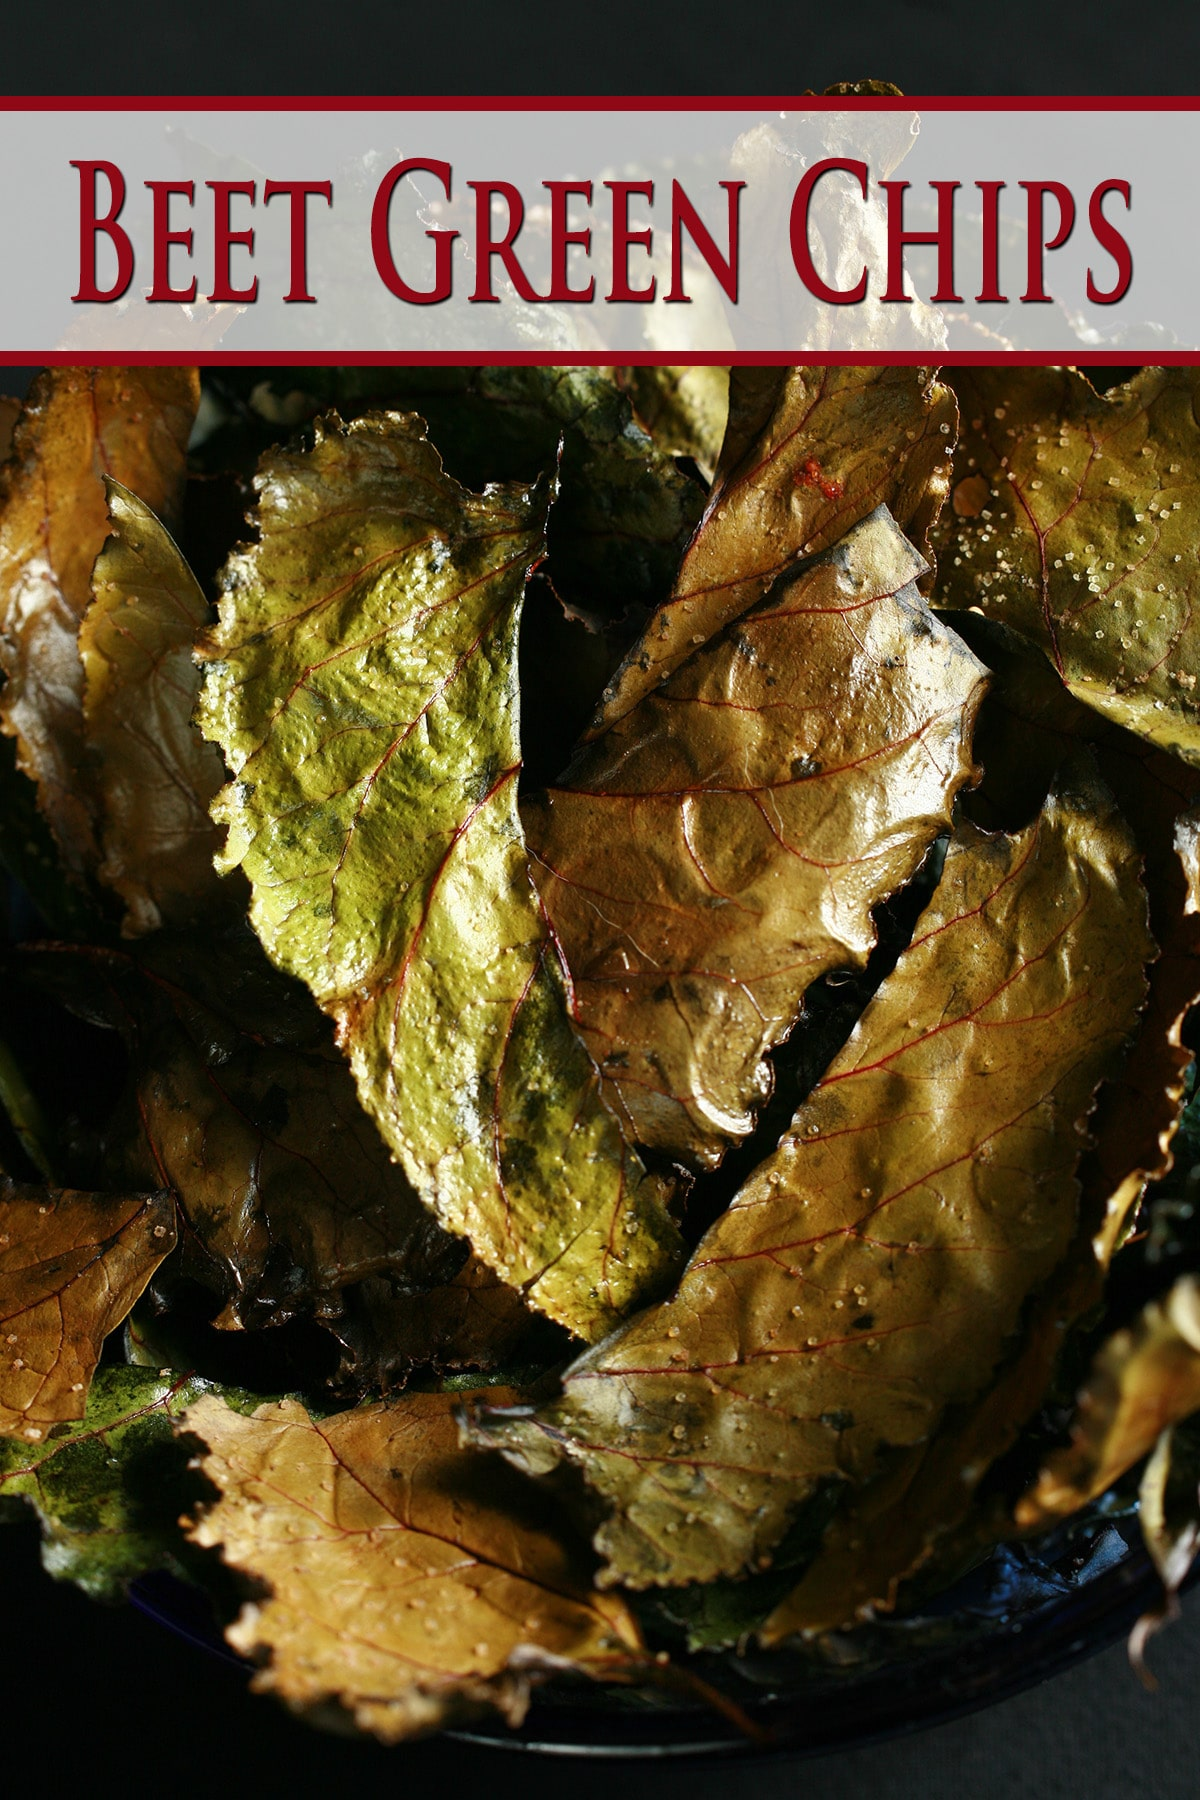 A bowl of roasted beet green chips - deep shades of greens and browns, with beautiful red veining.